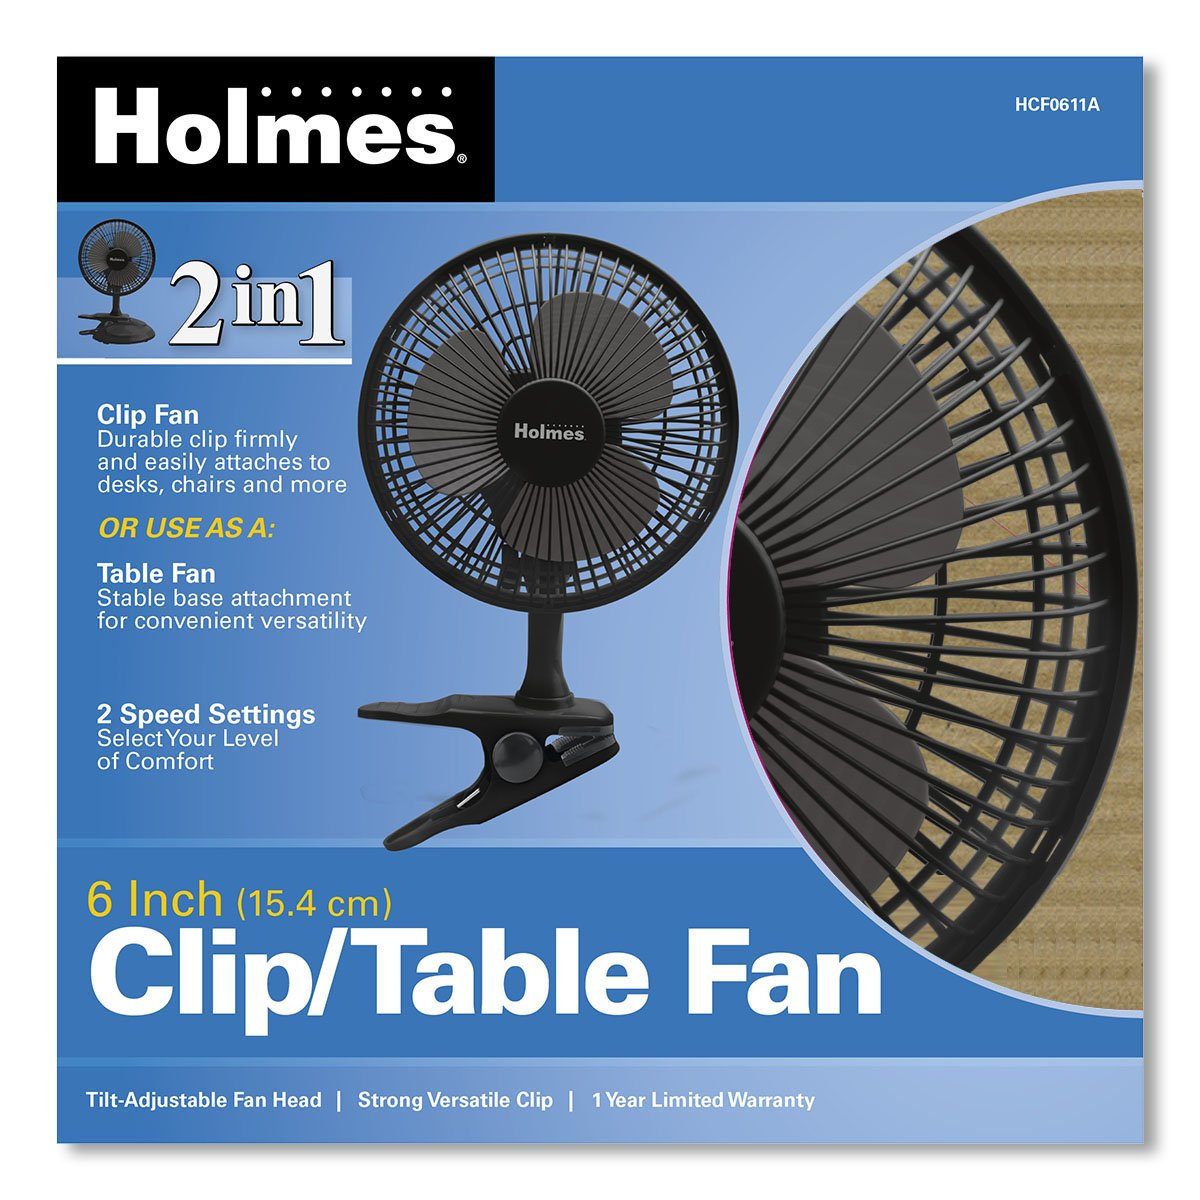 Amazon.com: Holmes Convertible Desk U0026 Clip Fan, Black HCF0611A BM: Home U0026  Kitchen